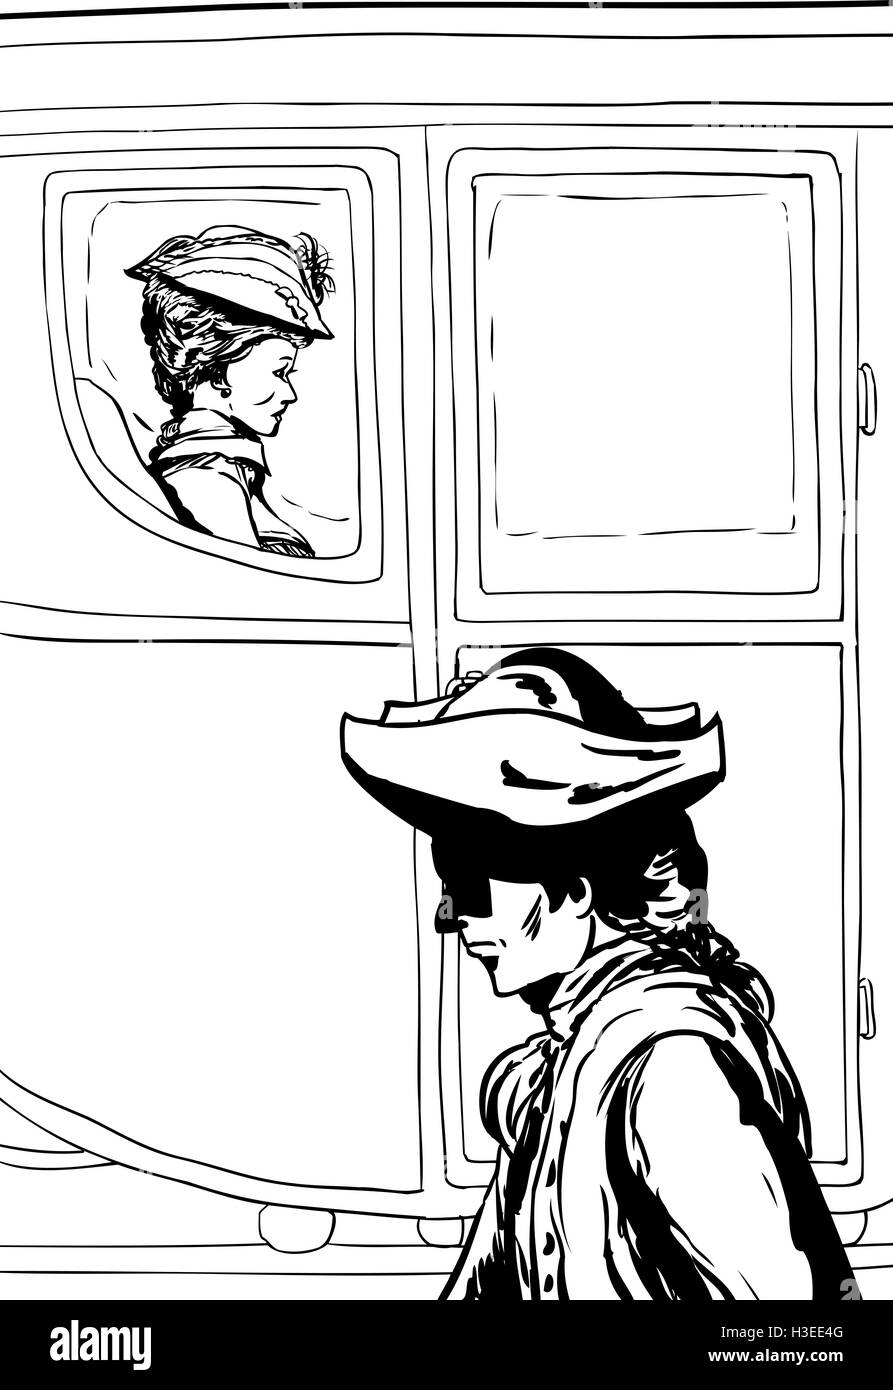 Man in tricorn hat walking past wealthy 18th century woman carriage with glass windows - Stock Image